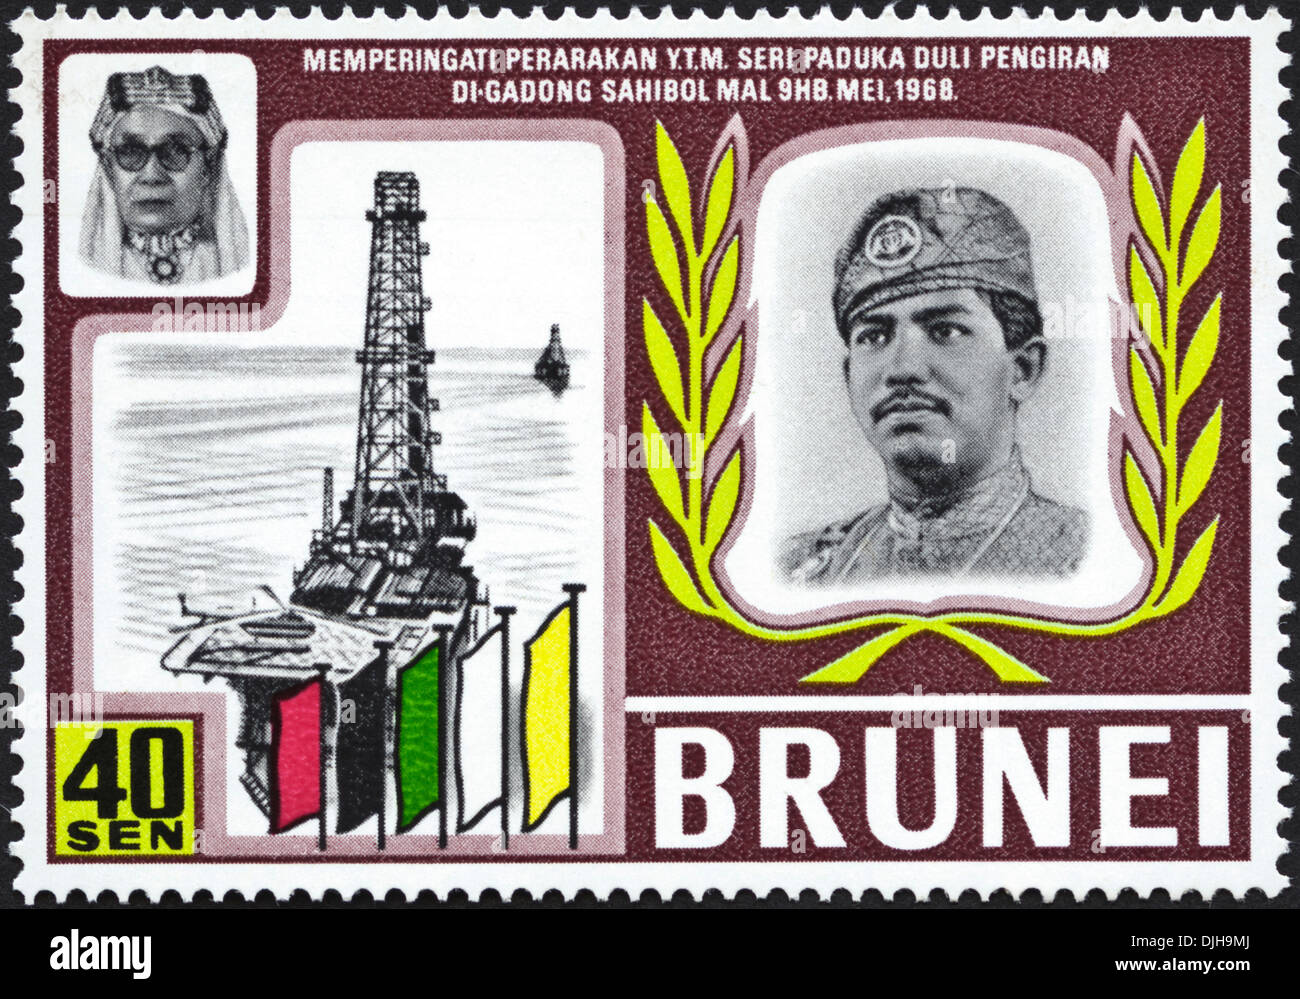 postage stamp Brunei 40 Sen featuring oil drilling platform issued 1969 - Stock Image